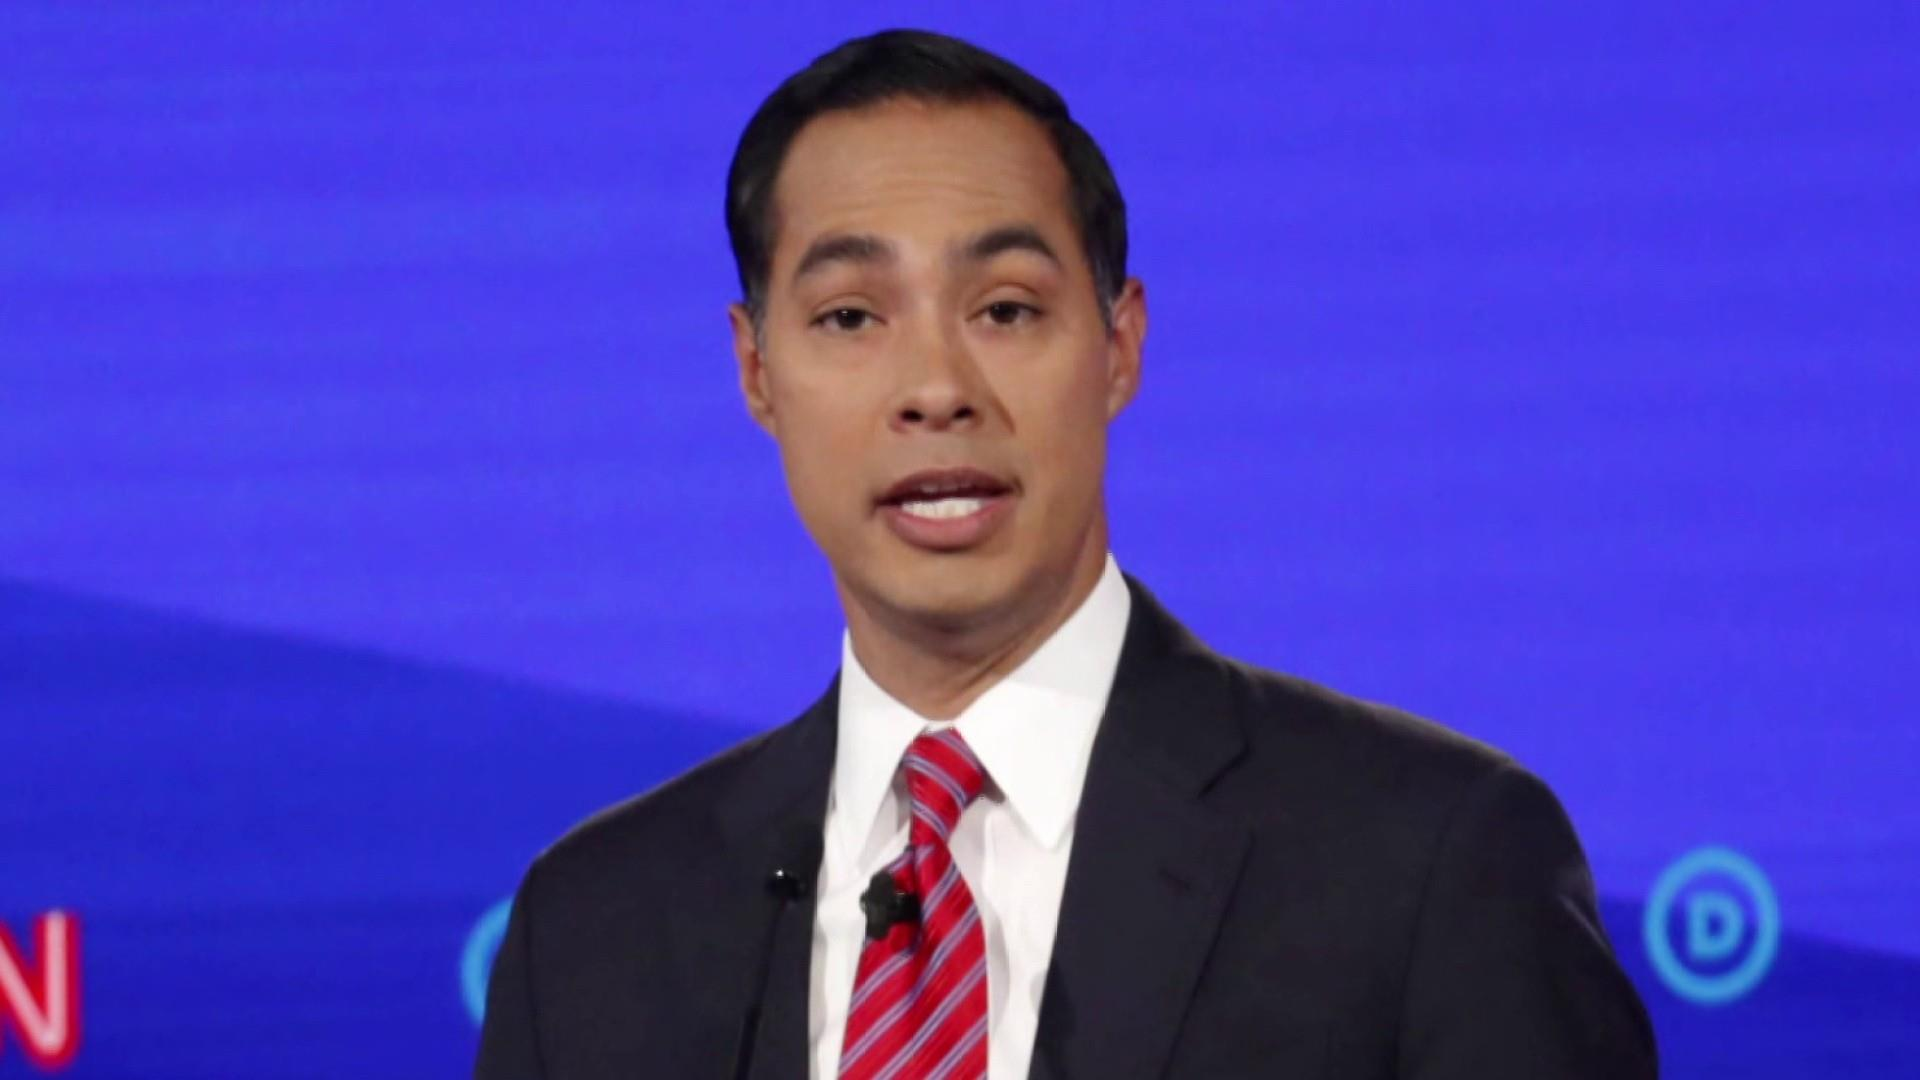 Will Julián Castro's call for help keep him in the game ahead of Iowa?